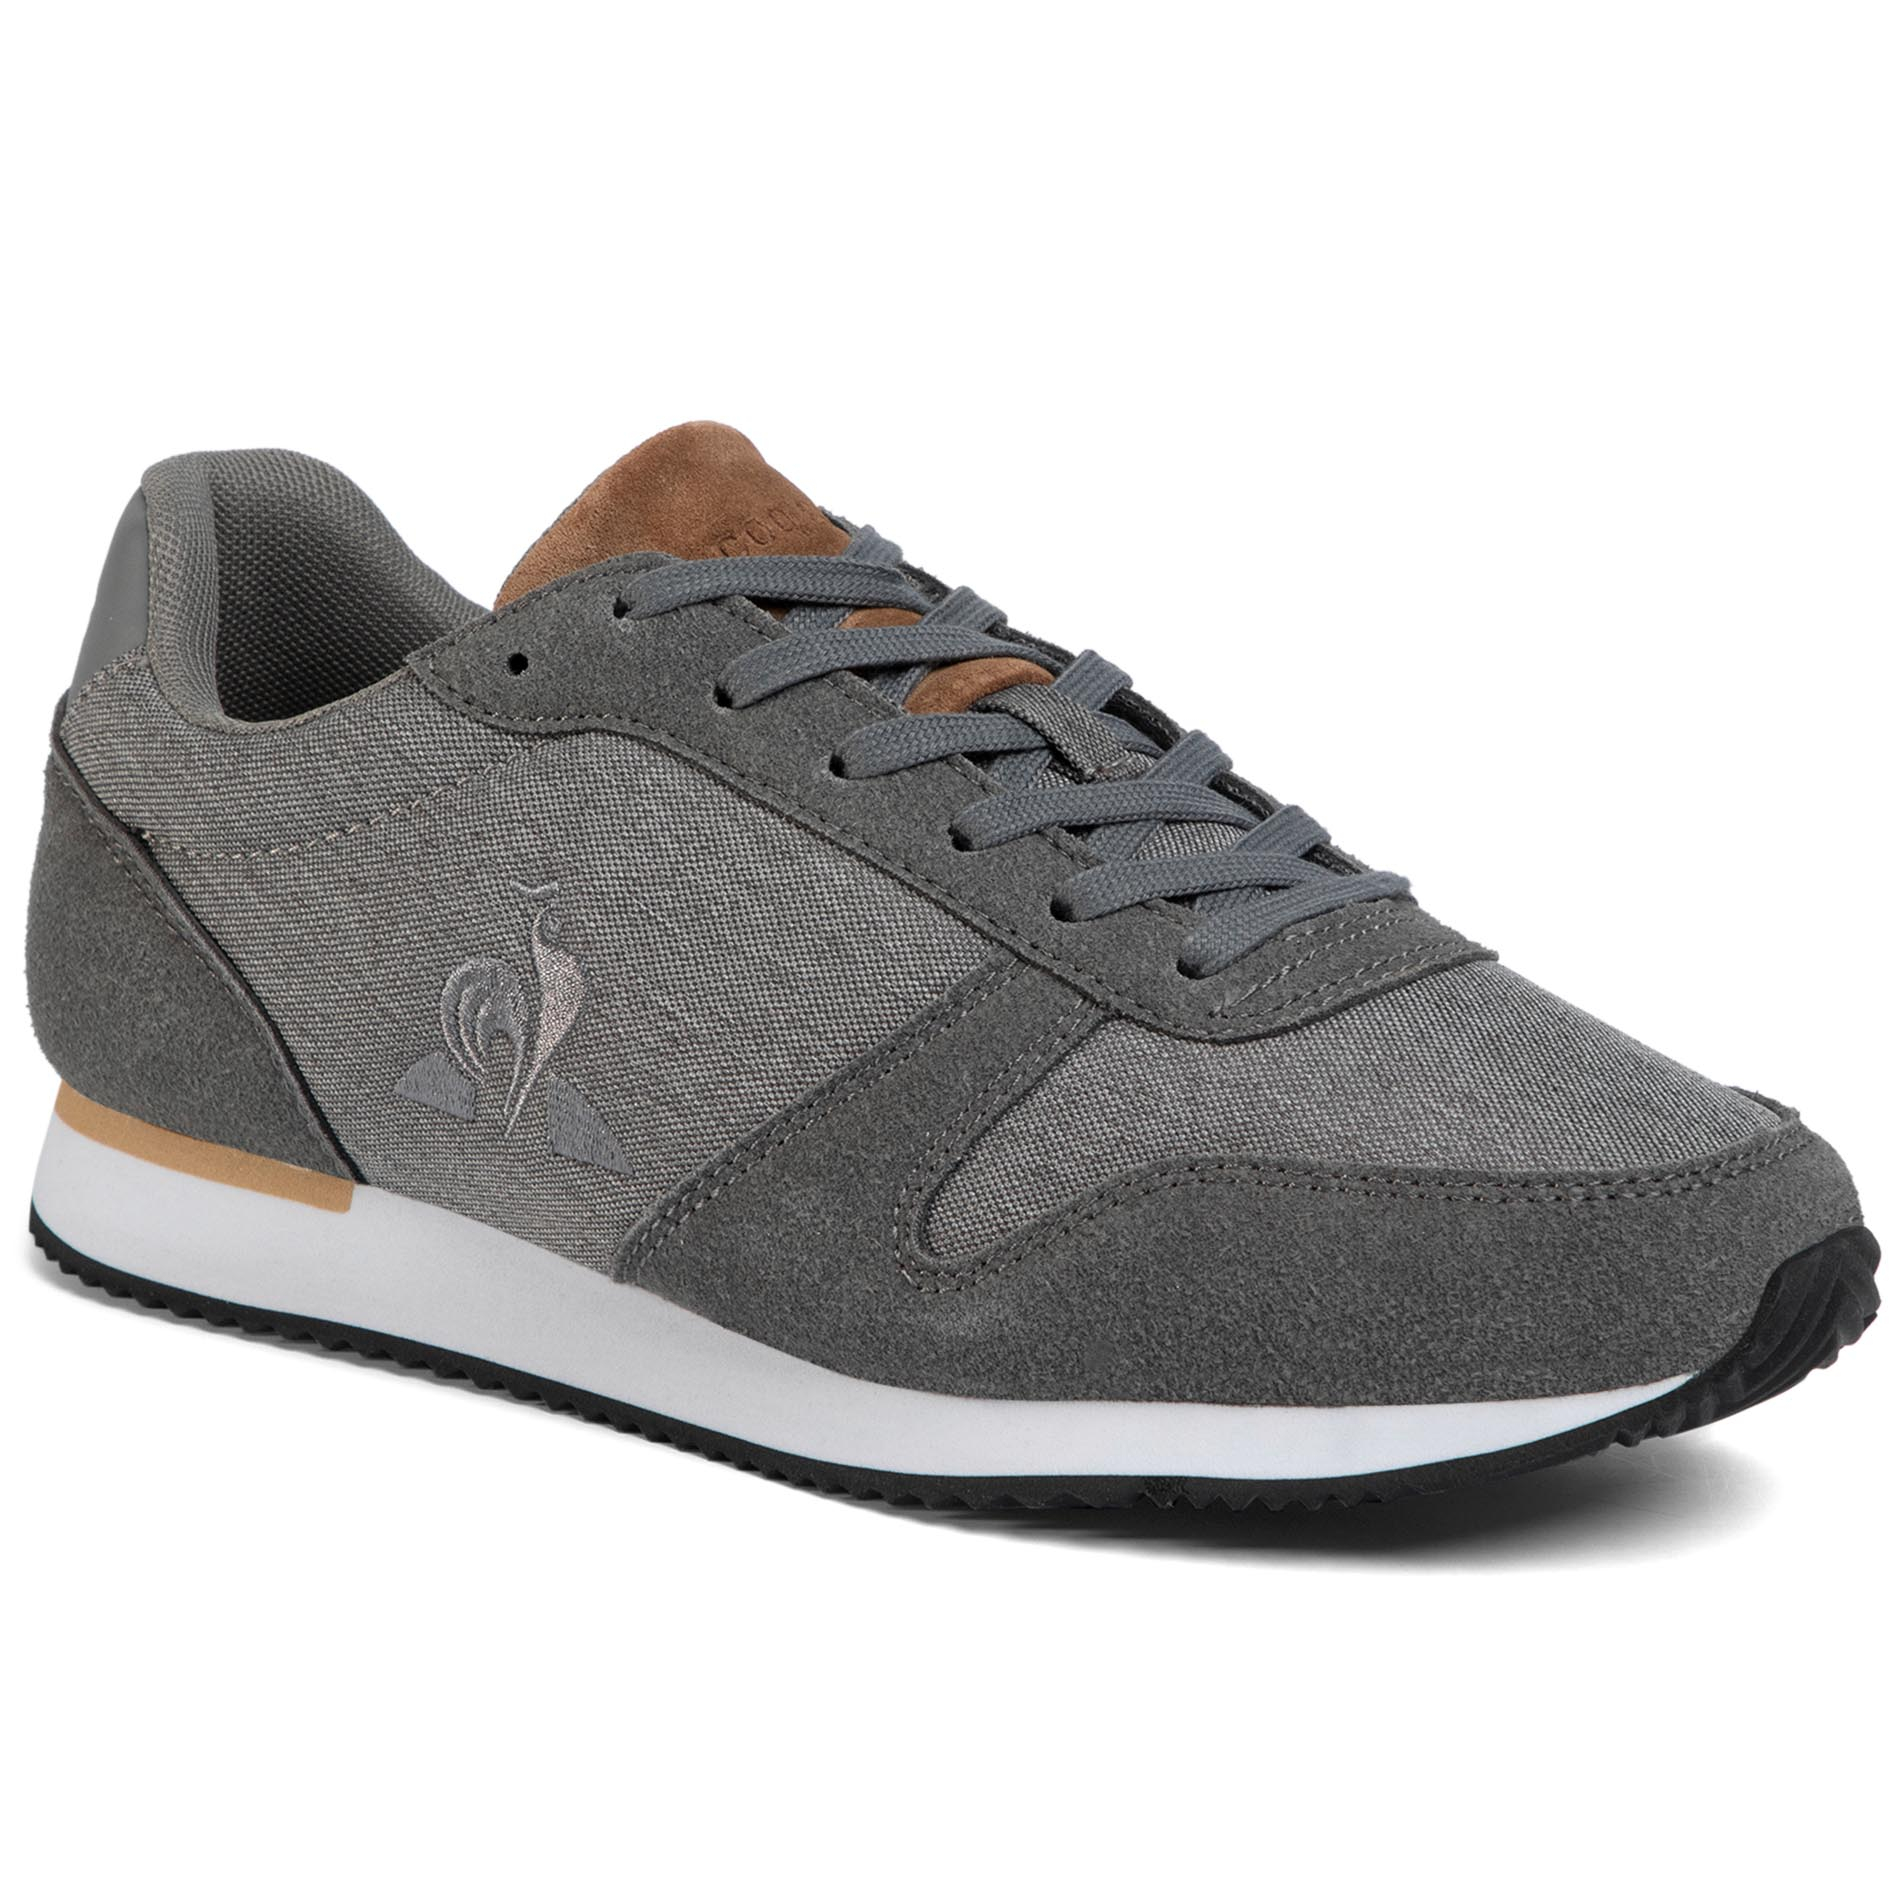 Sneakers LE COQ SPORTIF - Matrix Denim 2010322 Grey Denim